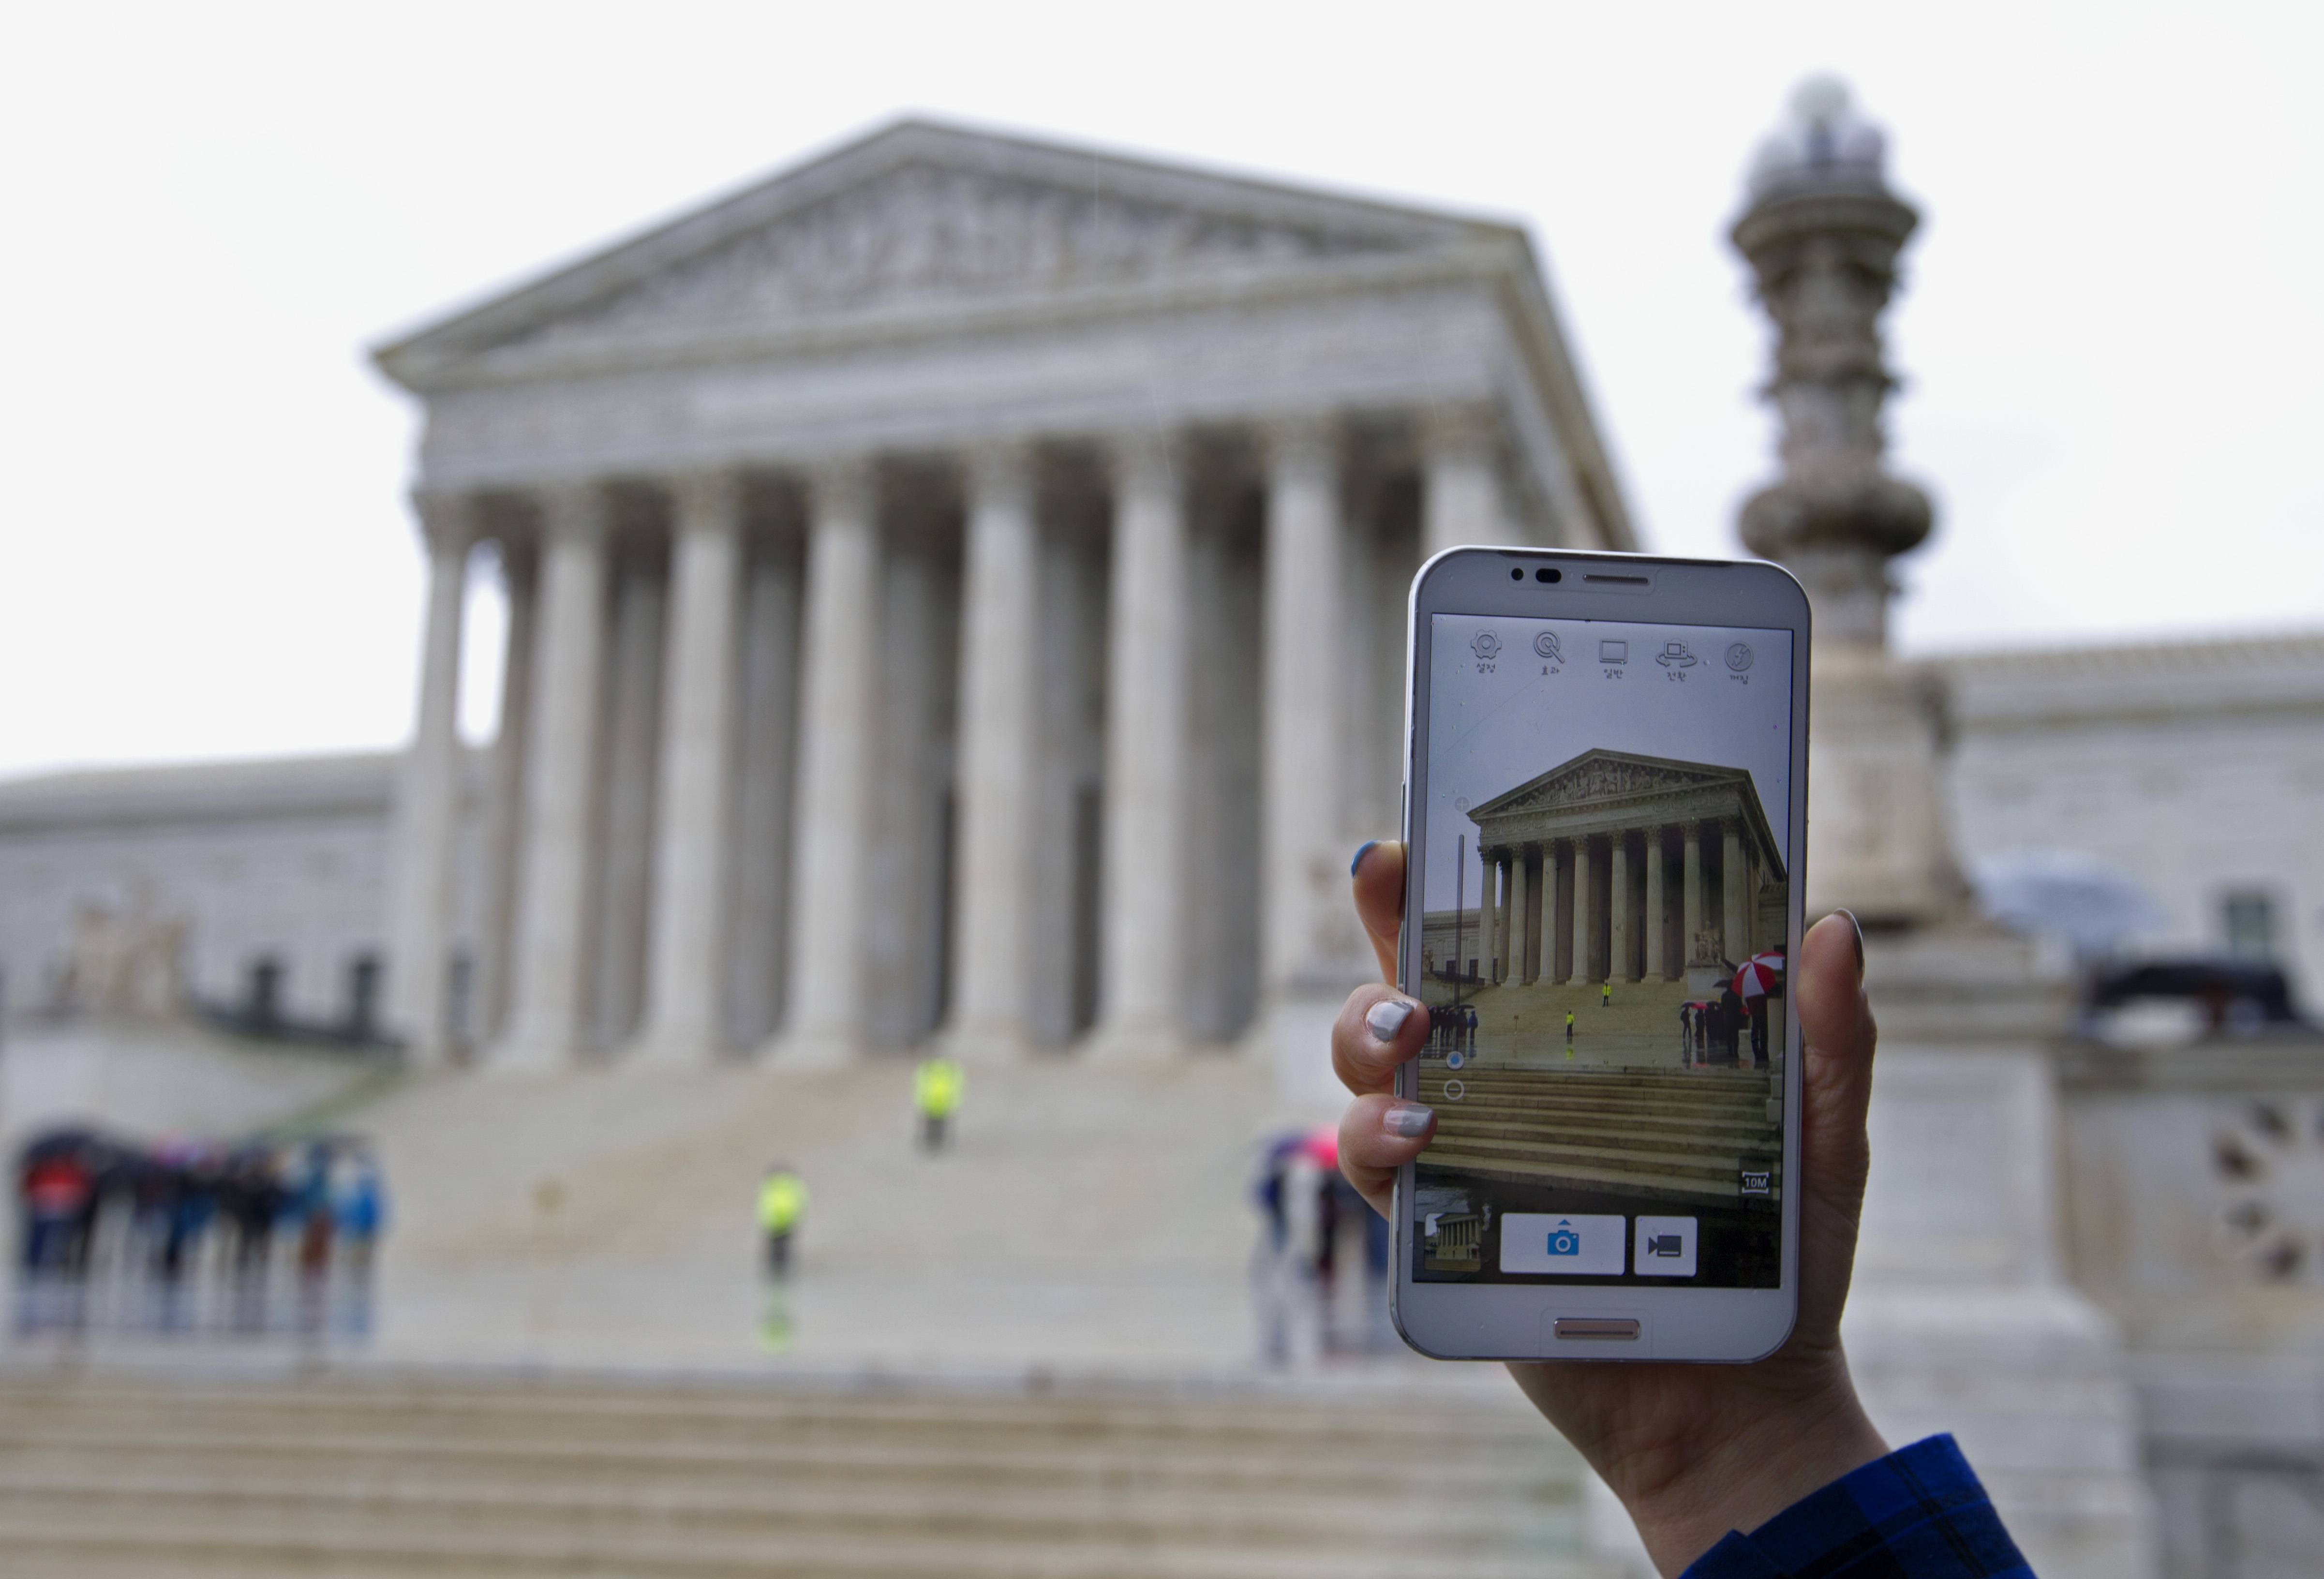 The Supreme Court ruling barring police from searching cellphones without a warrant had an immediate impact as police nationwide were briefed during roll calls, new procedures were issued and prosecutors discussed the potential impact to possibly thousands of pending court cases.